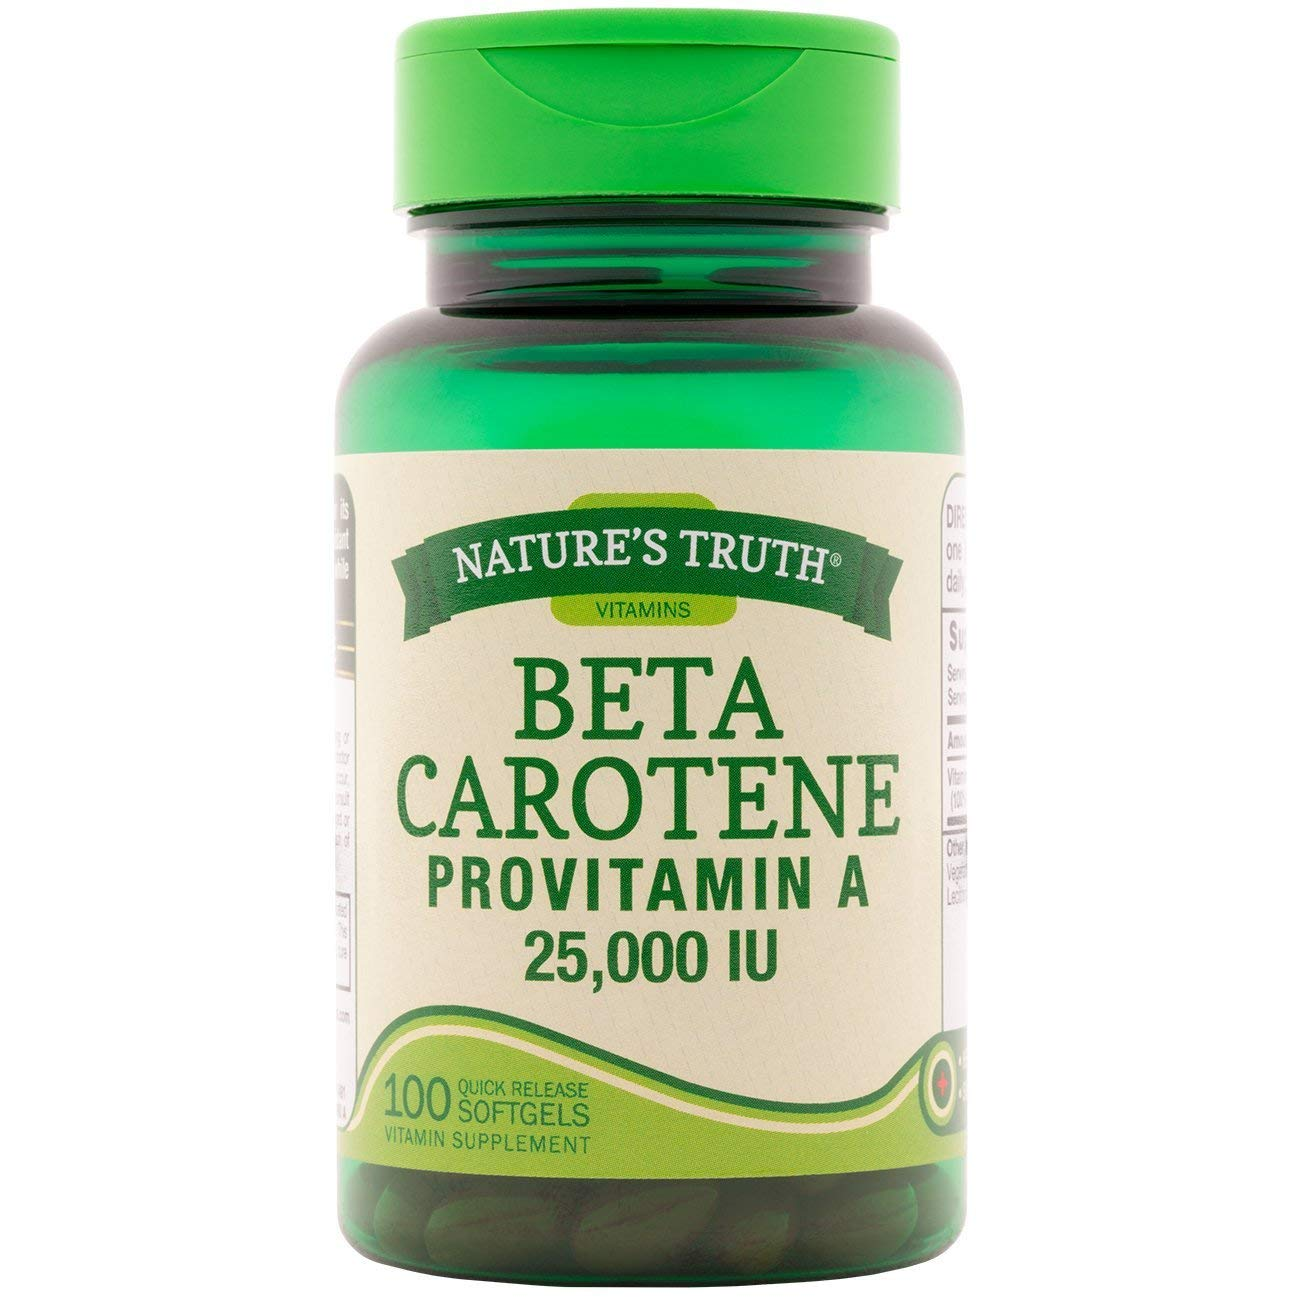 Nature's Truth Beta Carotene 25,000 IU Vitamin Supplement - 100 Softgels, Pack of 6 by Nature's Truth